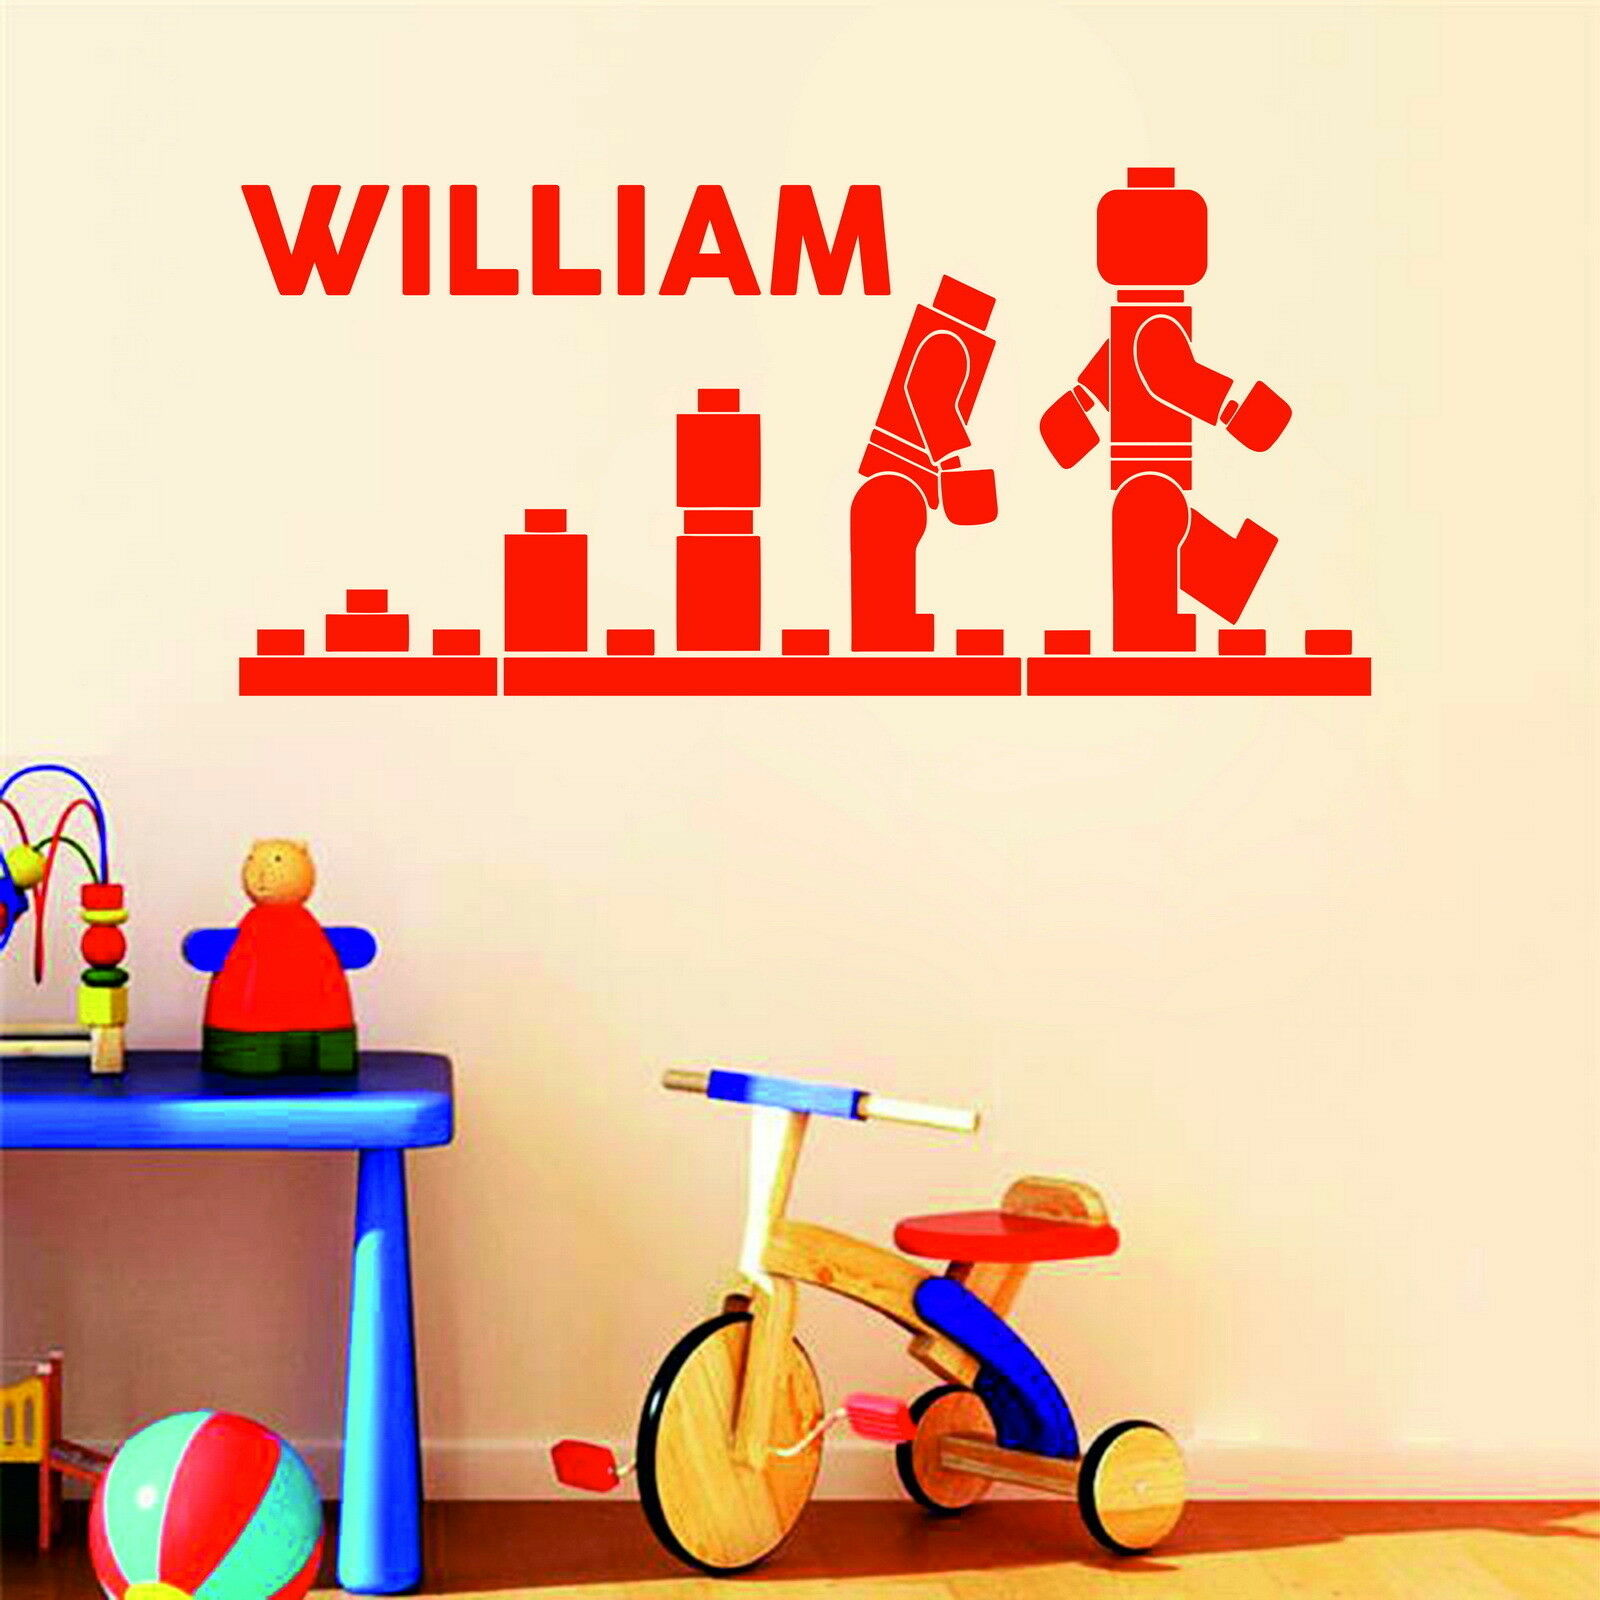 Details about Lego Evolution Personalised Boys or Girls Name Decor Vinyl  Wall Sticker Bedroom